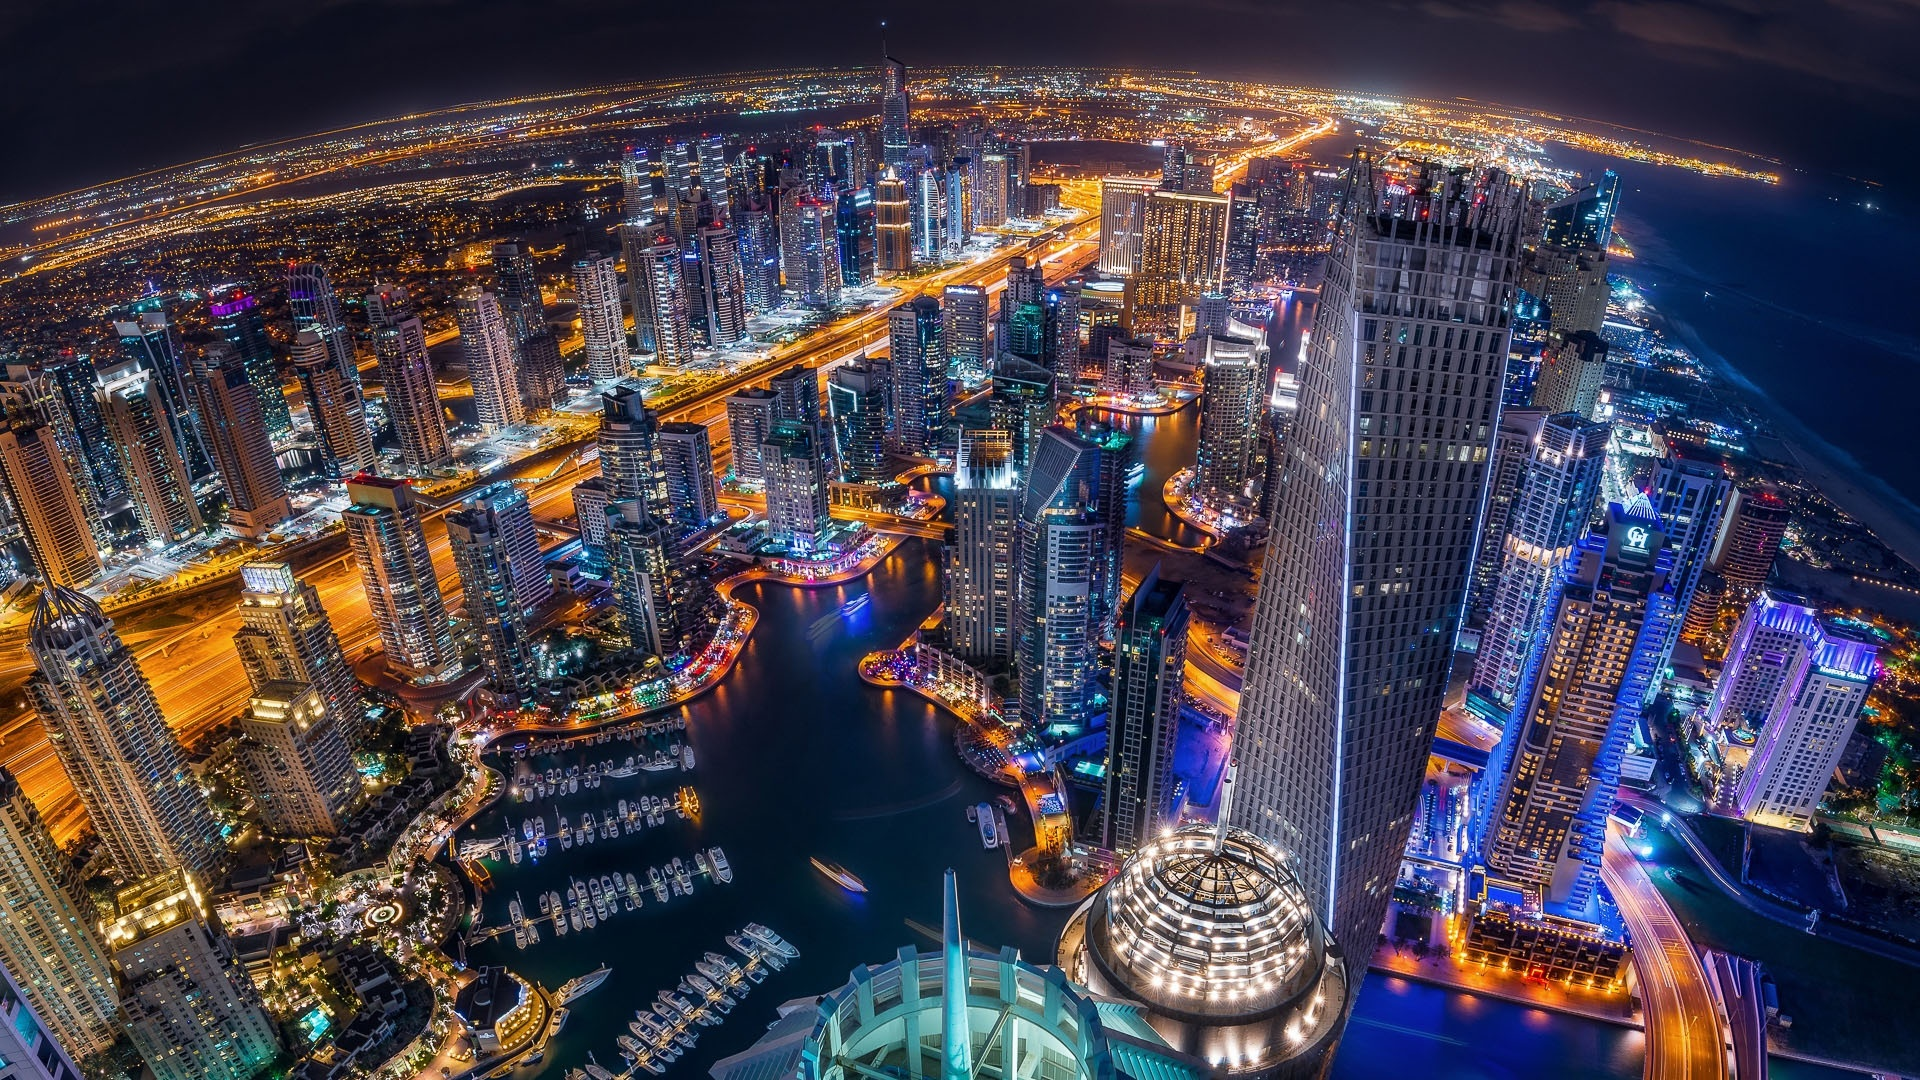 Dubai Marina Evening Night Lights